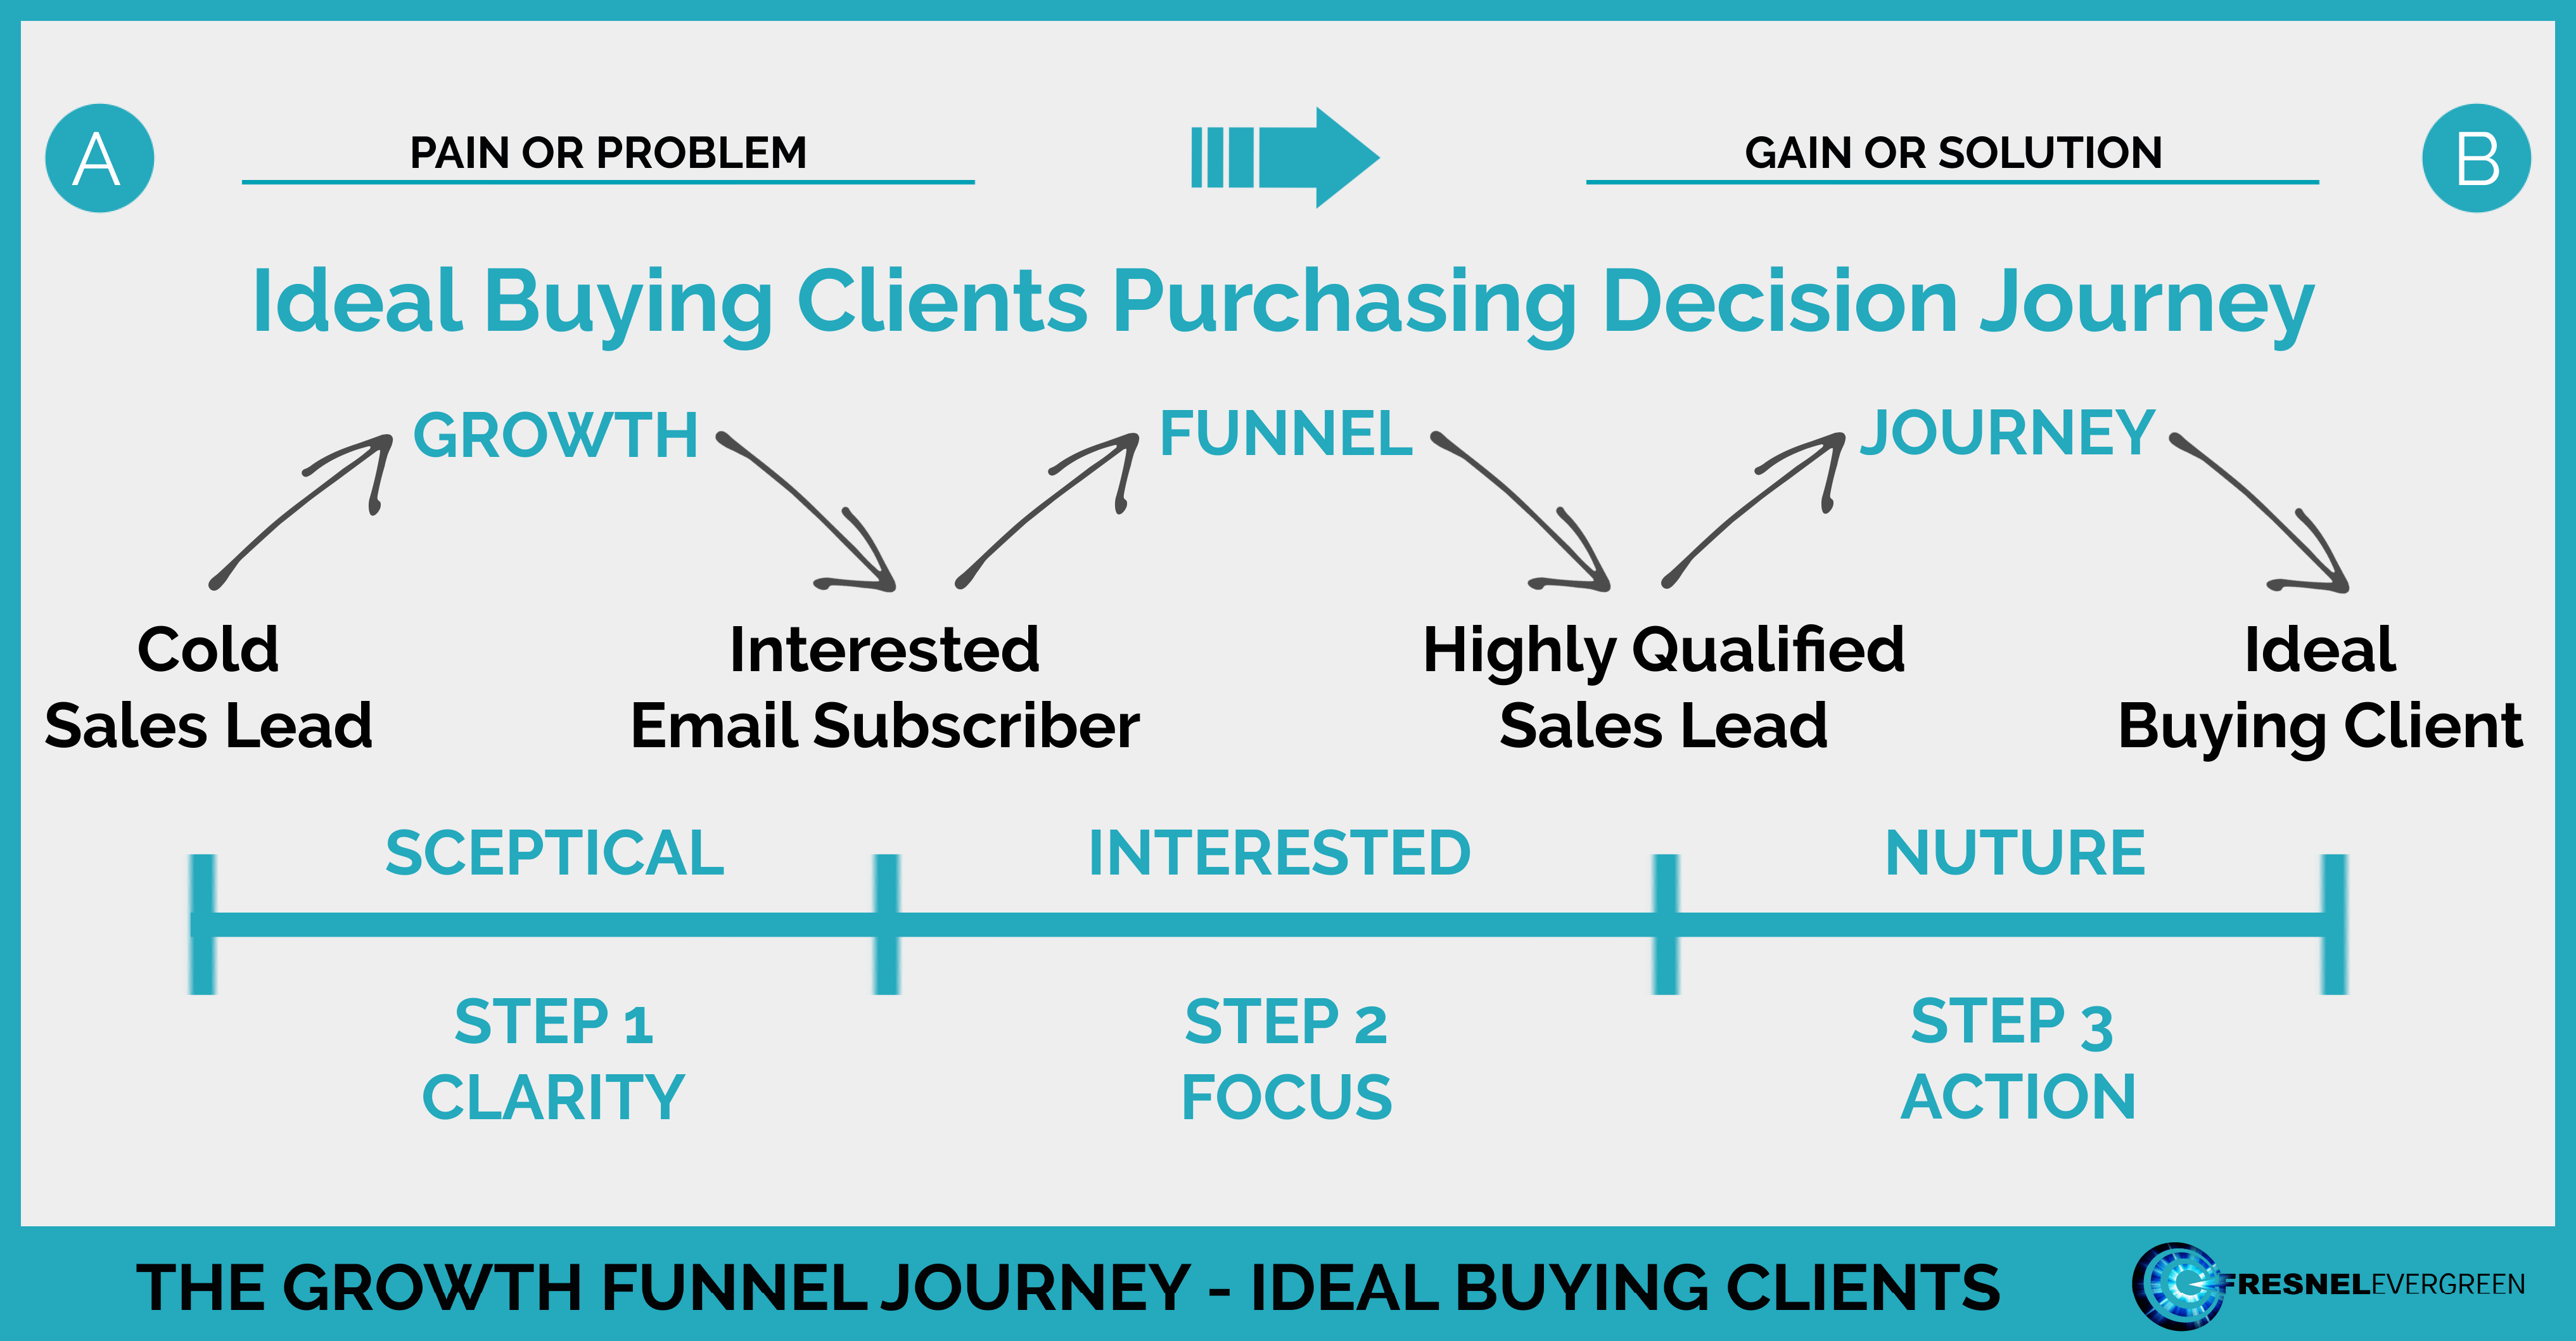 Ideal Buying Clients Purchasing Journey